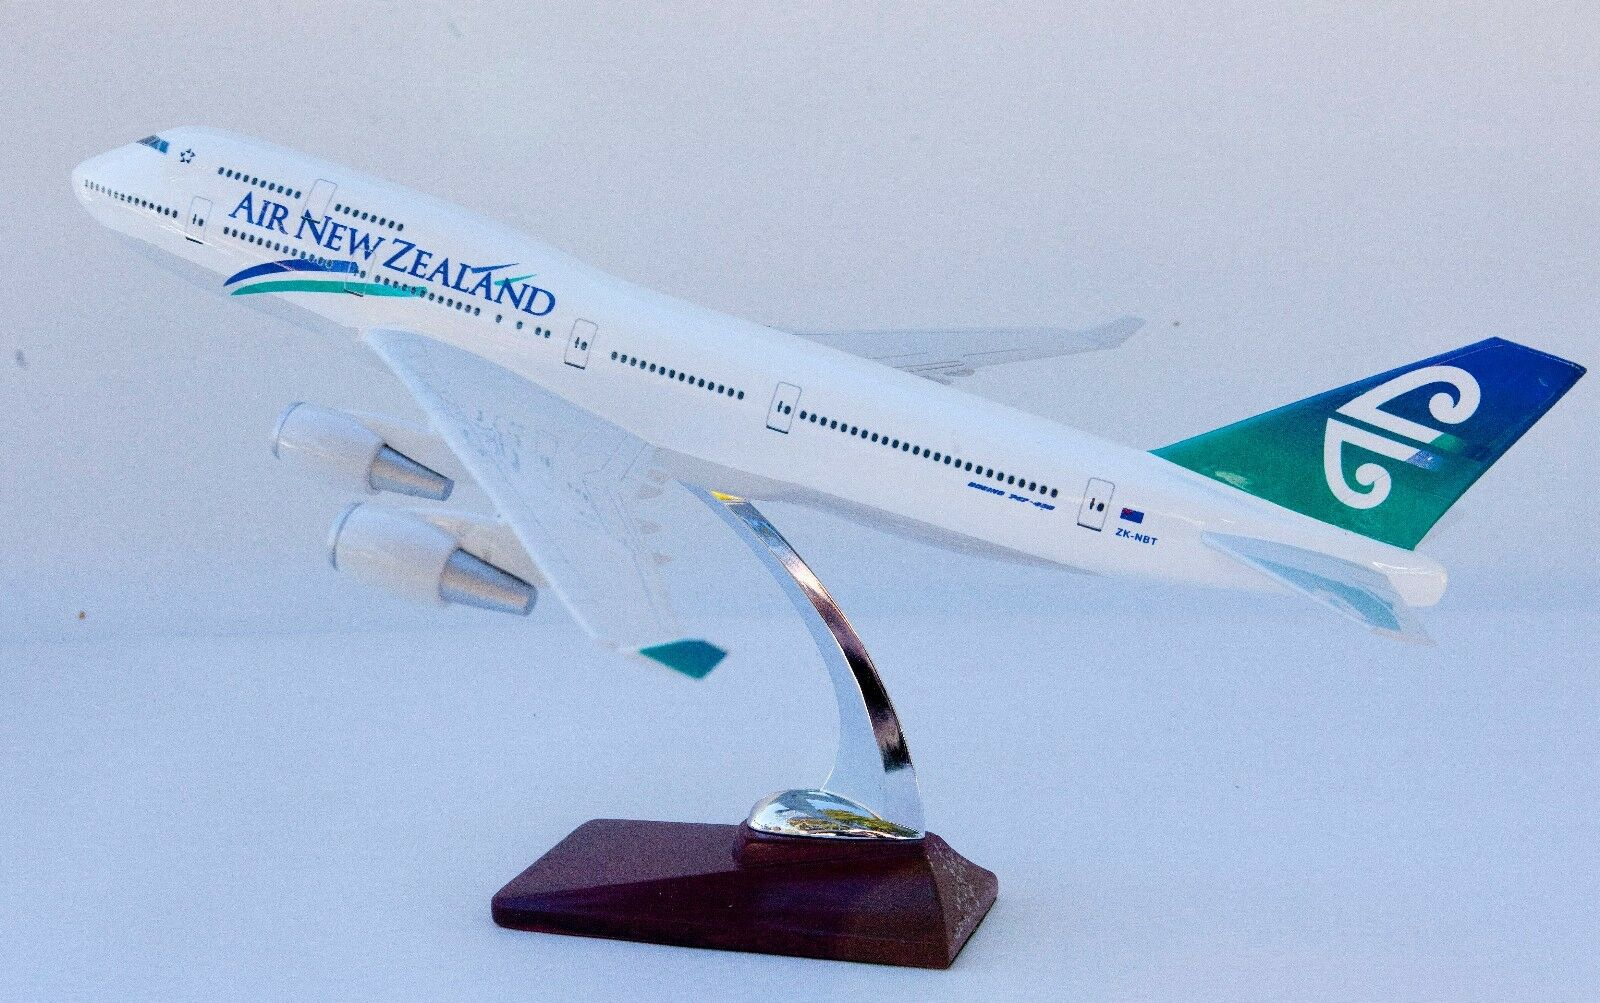 AIR NEW ZEALAND B747 LARGE PLANE MODEL  1 150 AIRPLANE APX 43cm SOLID